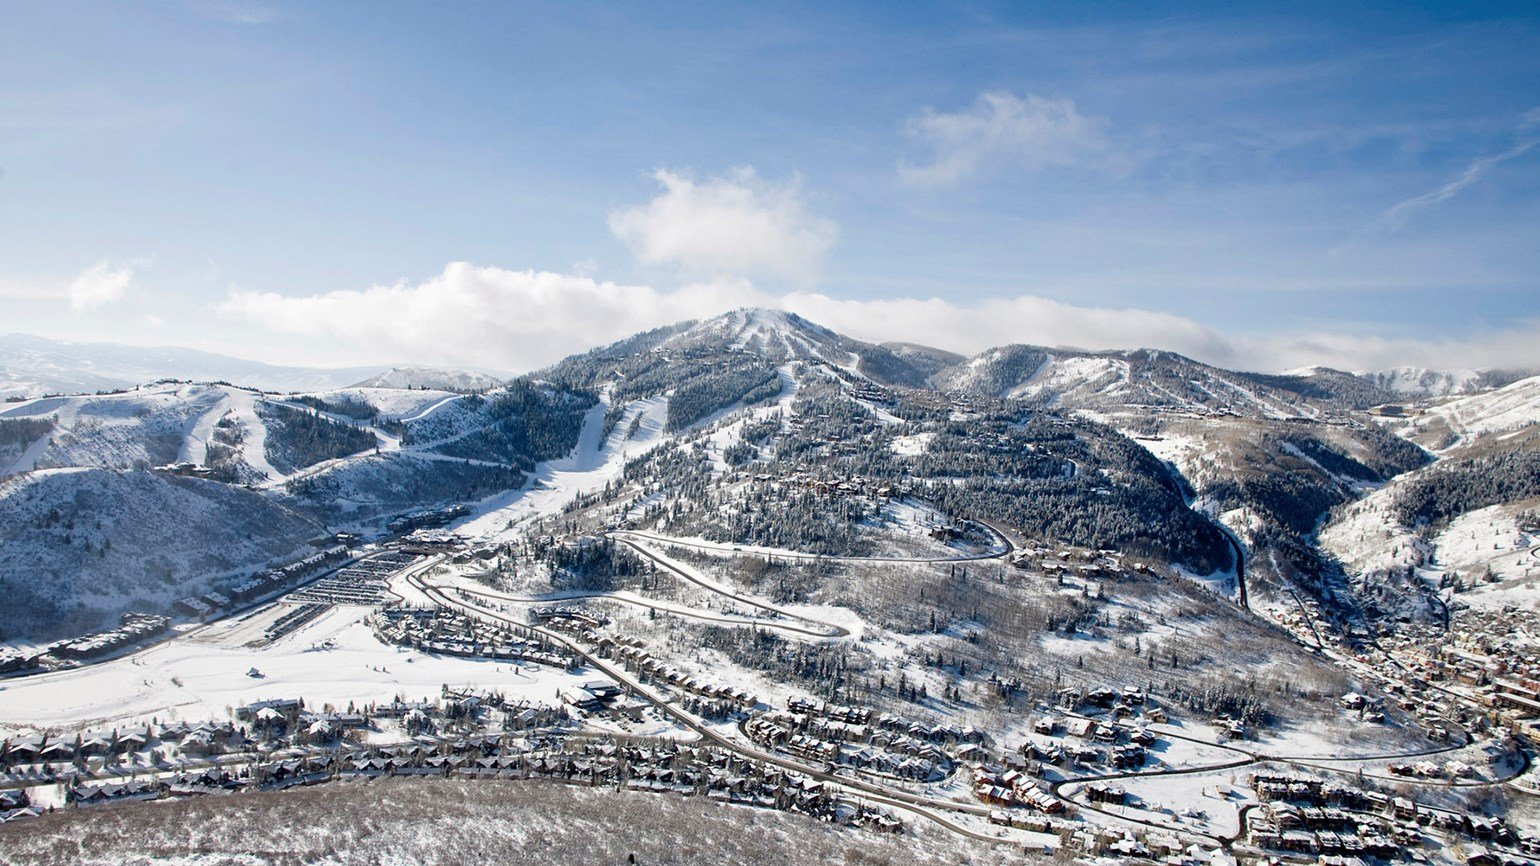 Major ski resort company has new name -- Alterra Mountain Co.